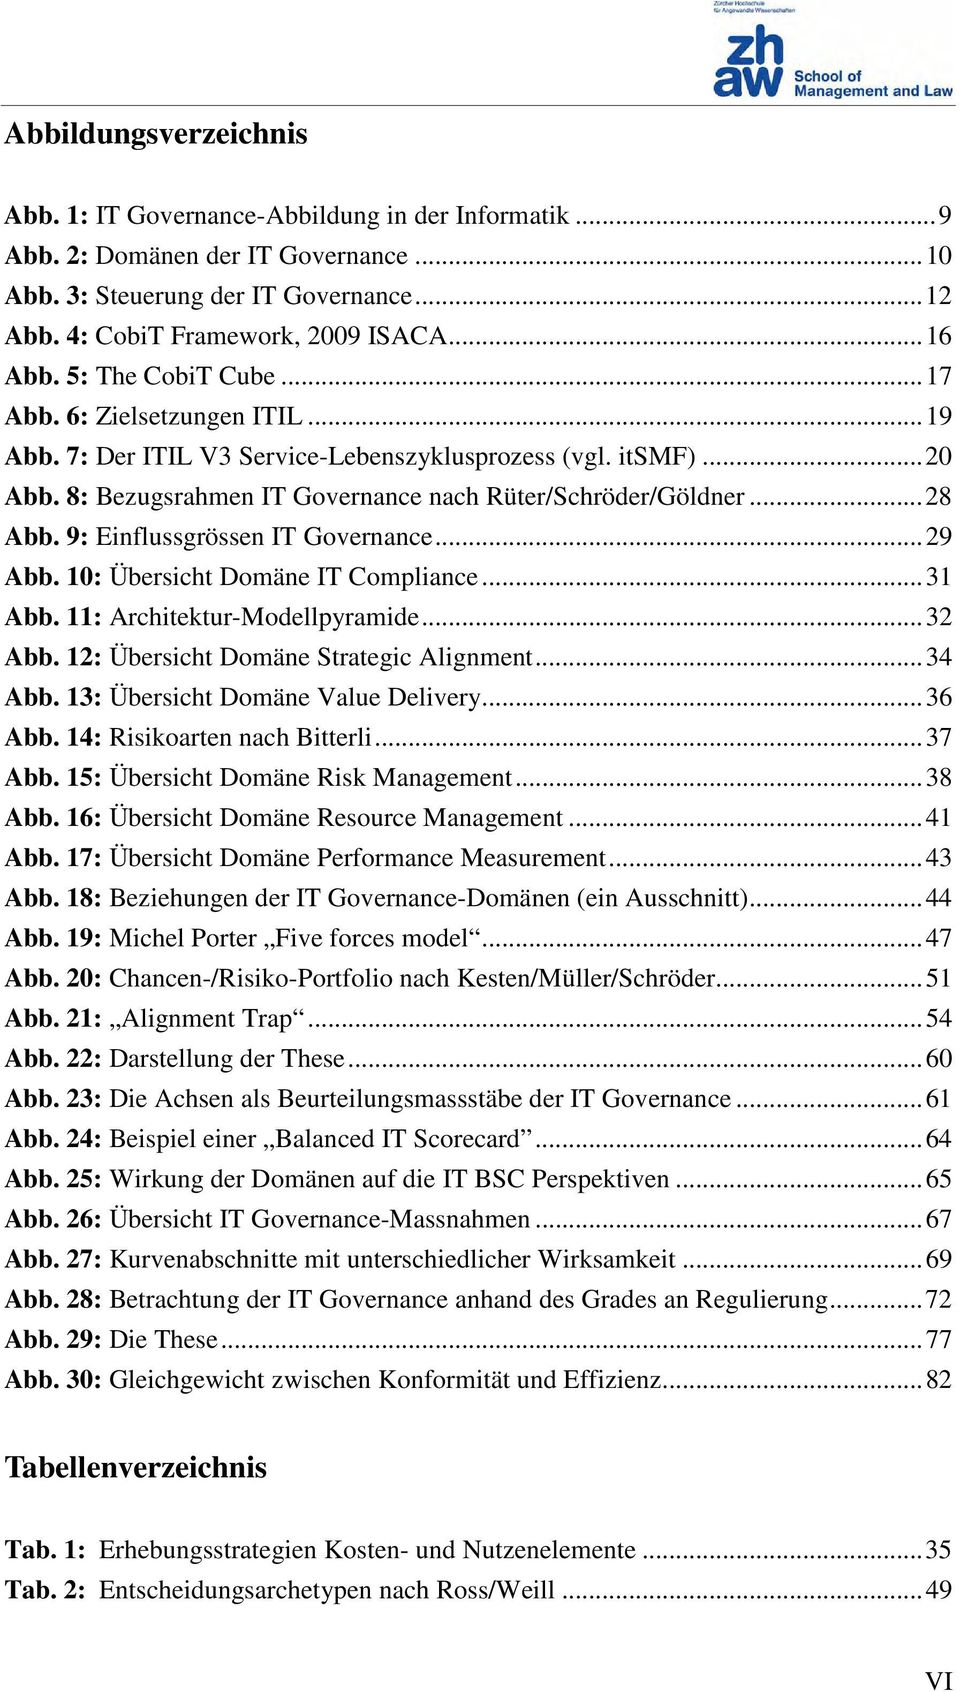 9: Einflussgrössen IT Governance...29 Abb. 10: Übersicht Domäne IT Compliance...31 Abb. 11: Architektur-Modellpyramide...32 Abb. 12: Übersicht Domäne Strategic Alignment...34 Abb.